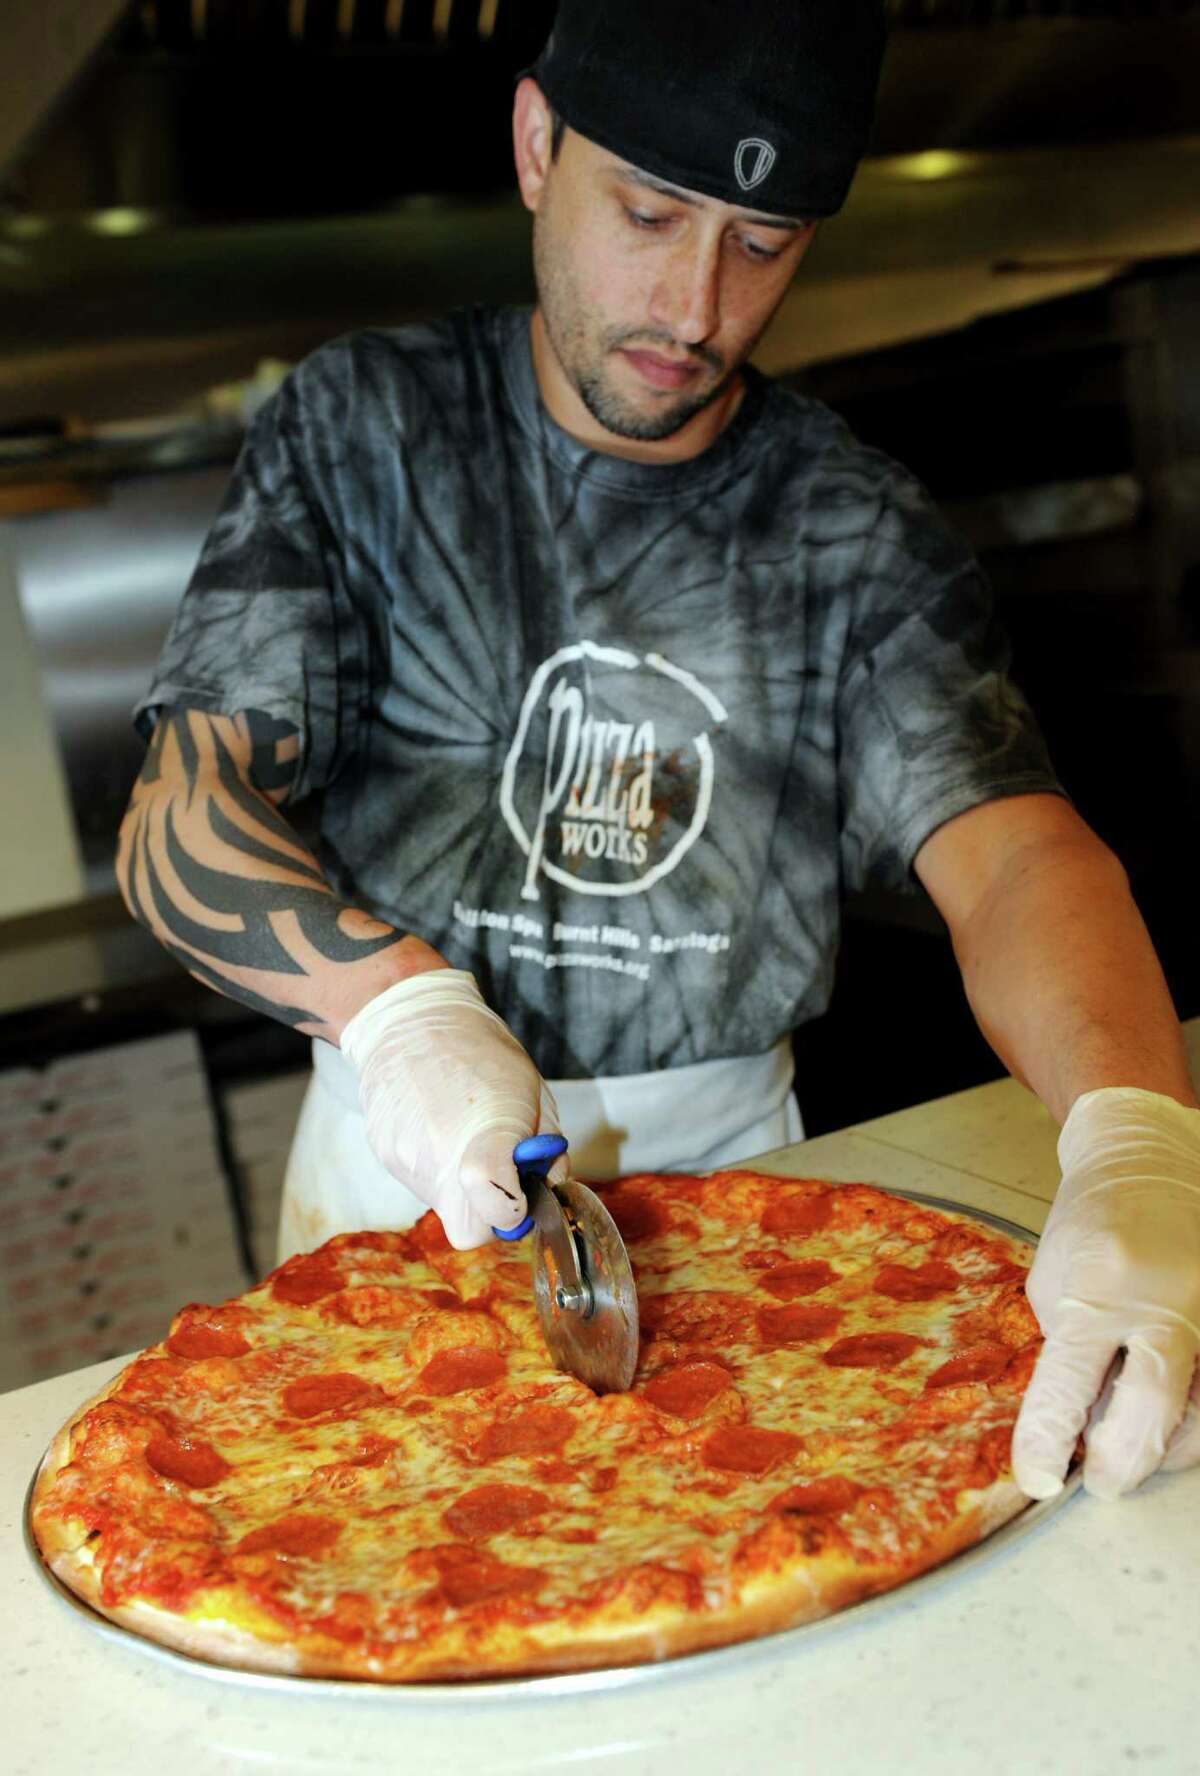 Manager Scott Provost cuts a pepperoni pizza on Tuesday, Dec. 11, 2012, at Pizza Works in Saratoga Springs, N.Y. (Cindy Schultz / Times Union)